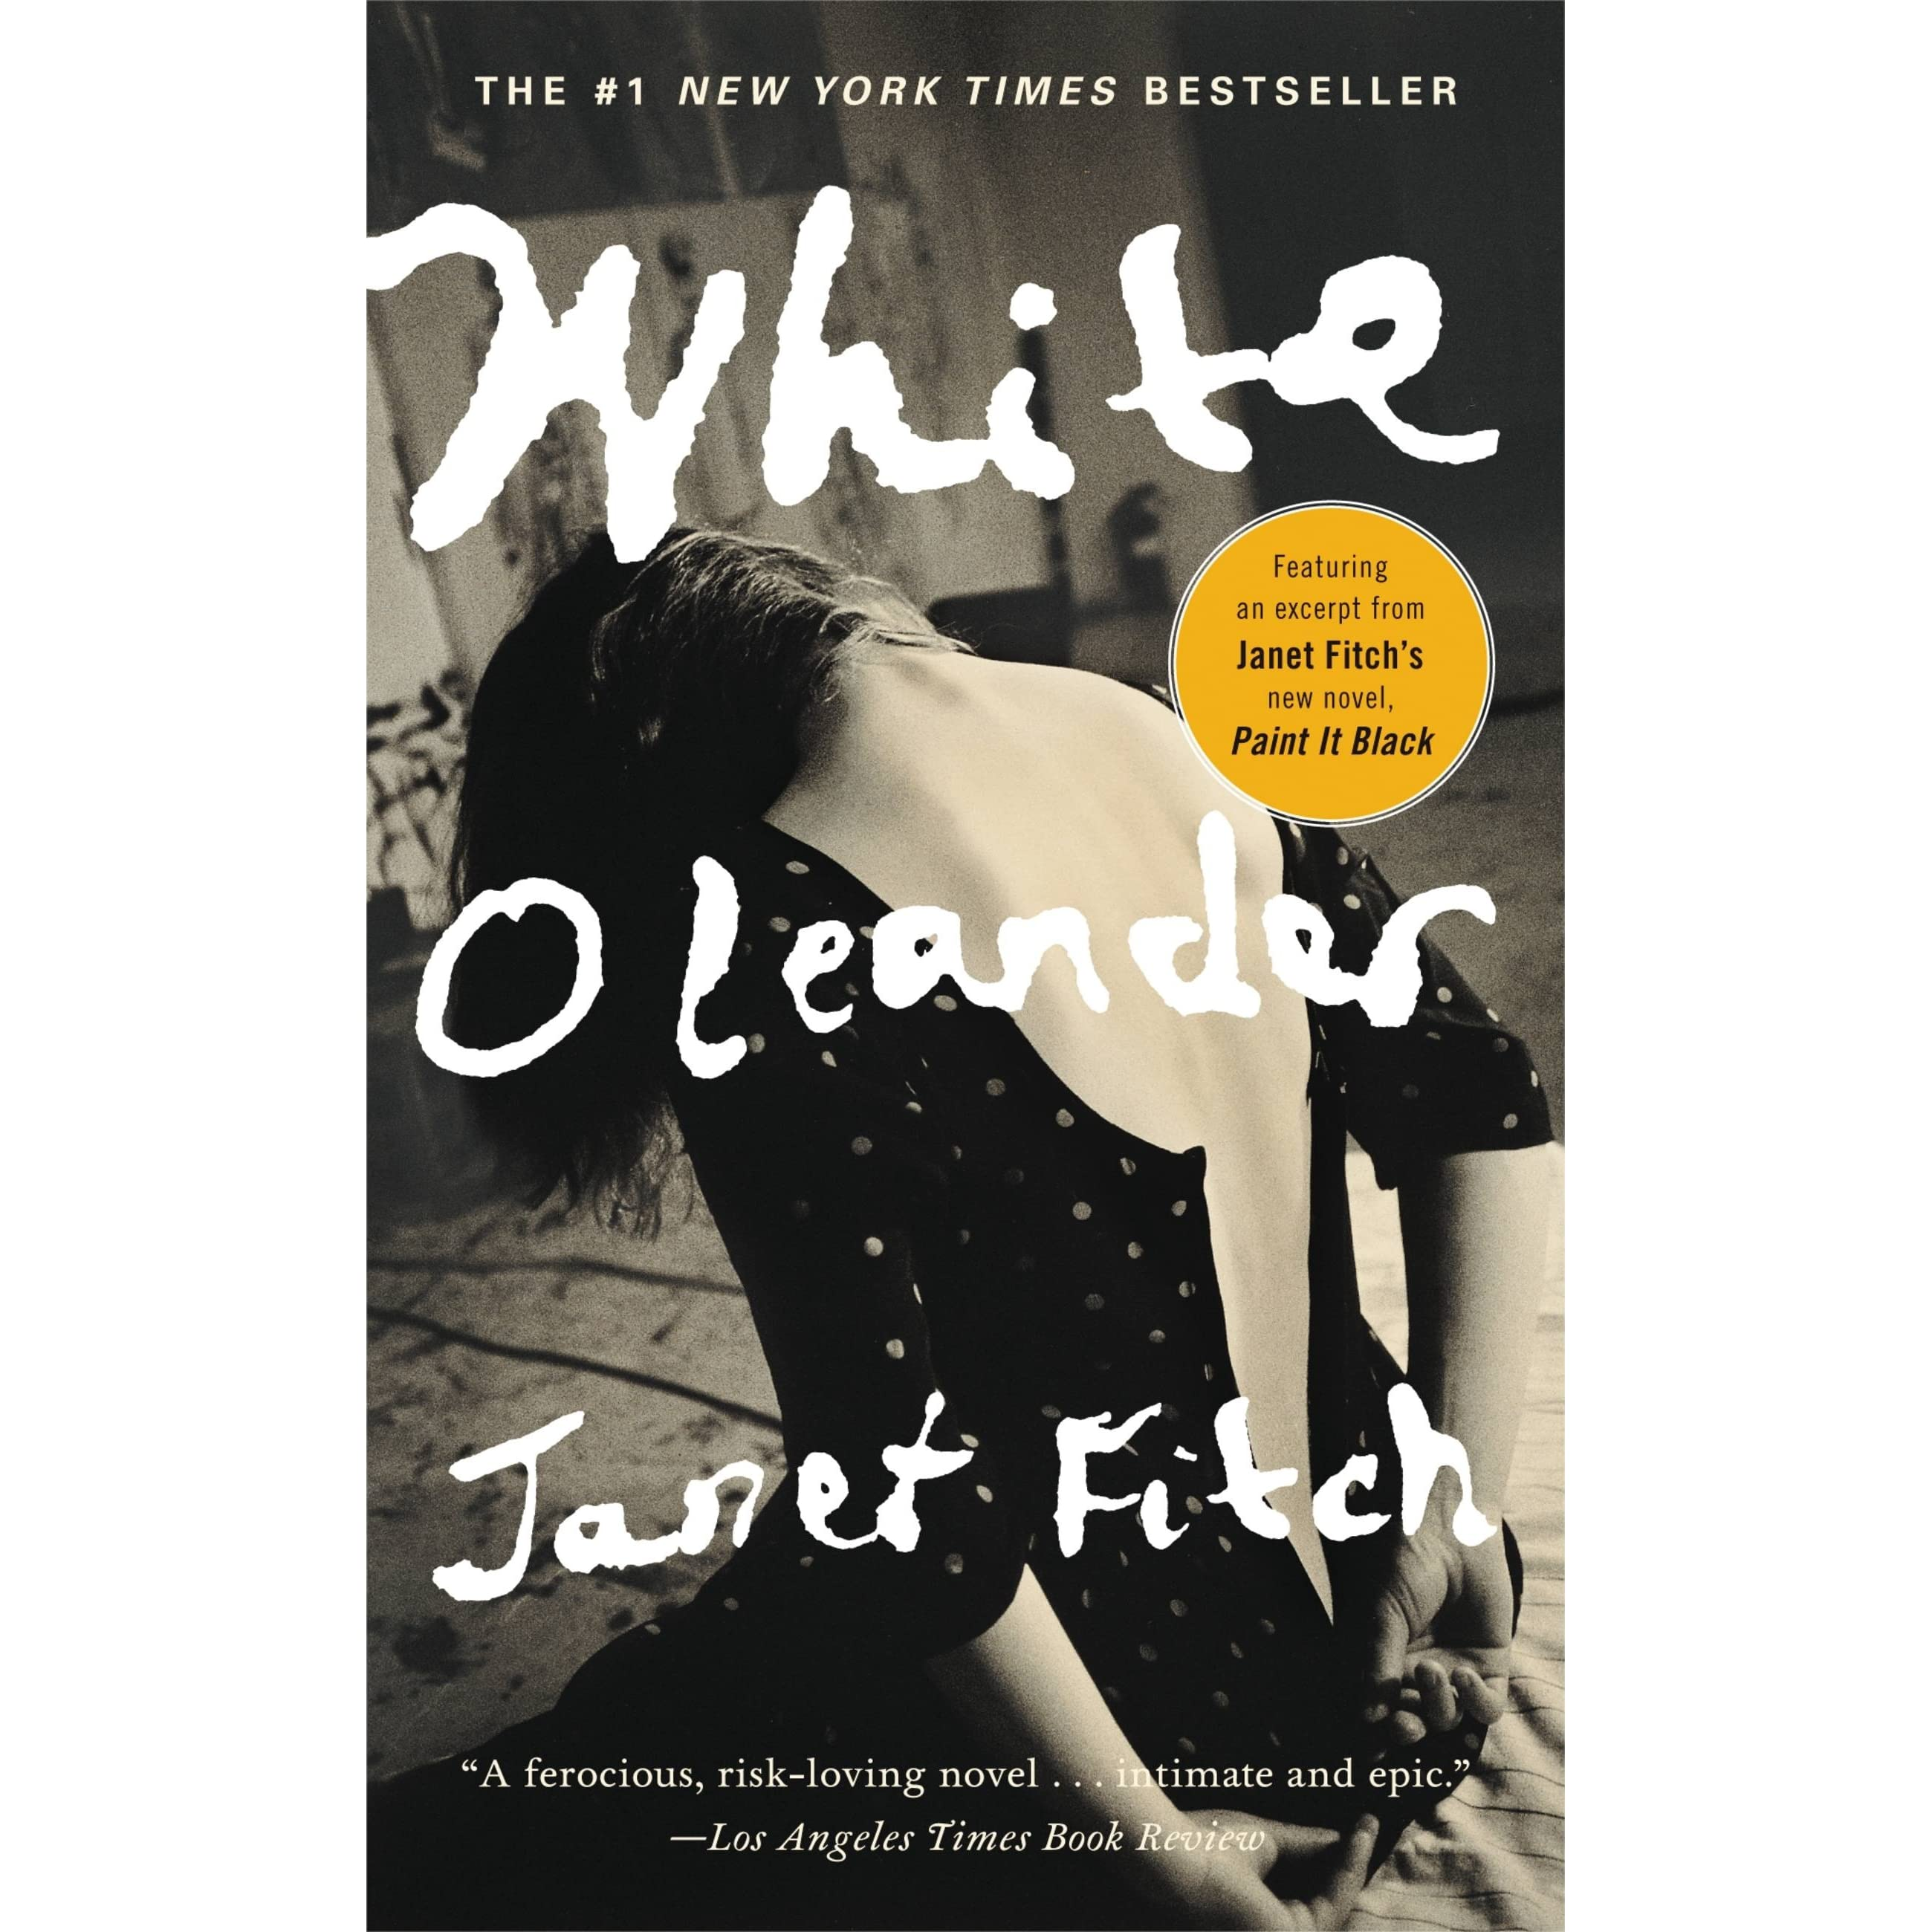 an analysis of white oleander by janet fitch